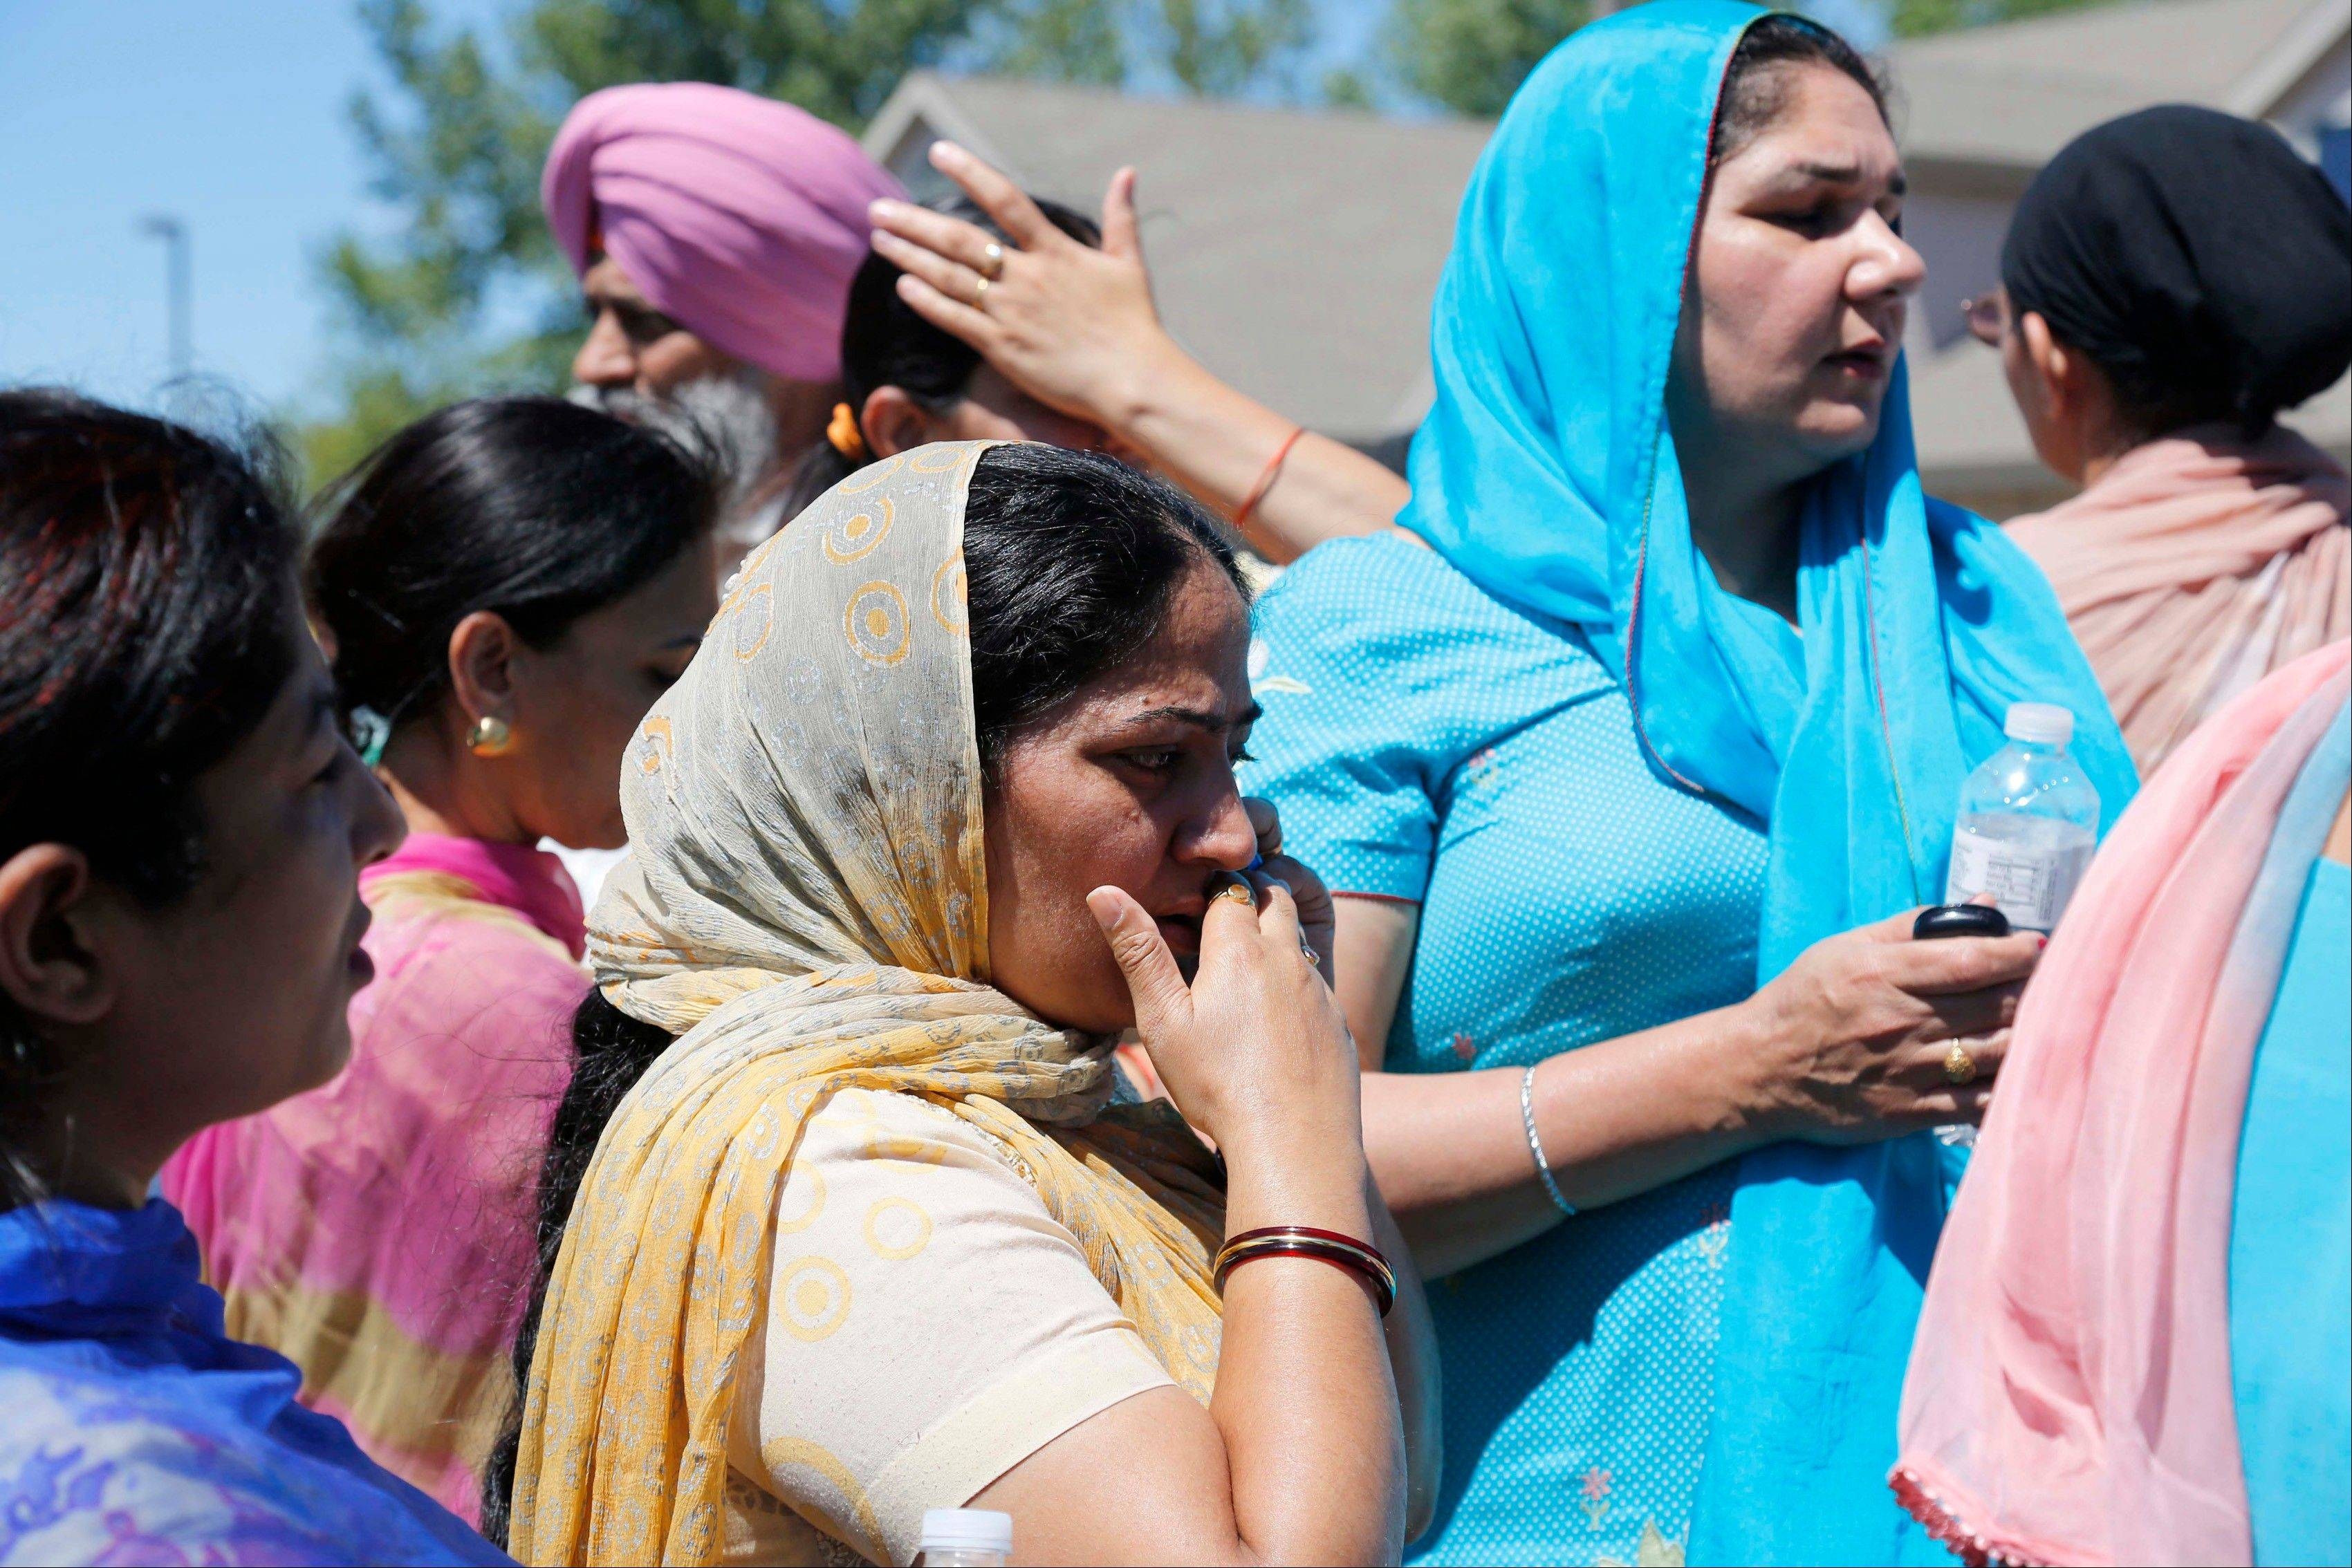 Bystanders assemble outside the scene of a shooting inside a Sikh temple in Oak Creek, Wis, on Sunday.